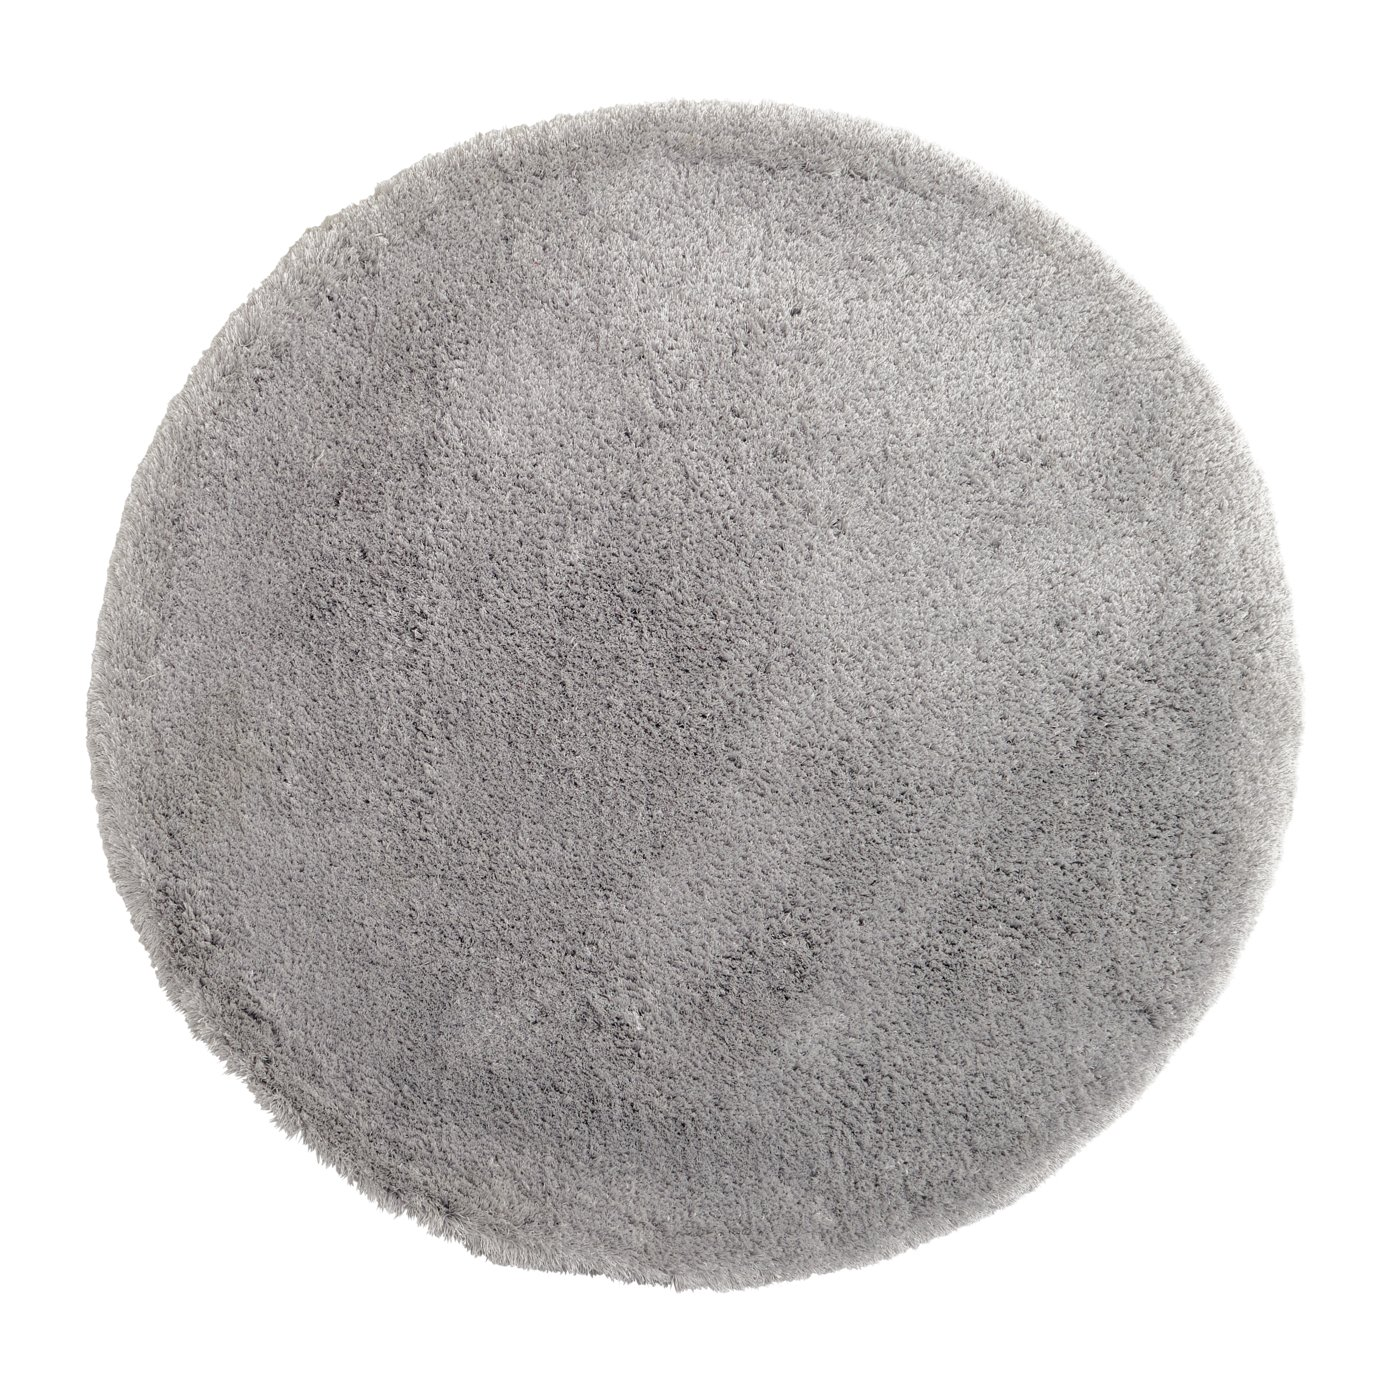 Argos Home Snuggle Shaggy Circle Rug - Dove Grey